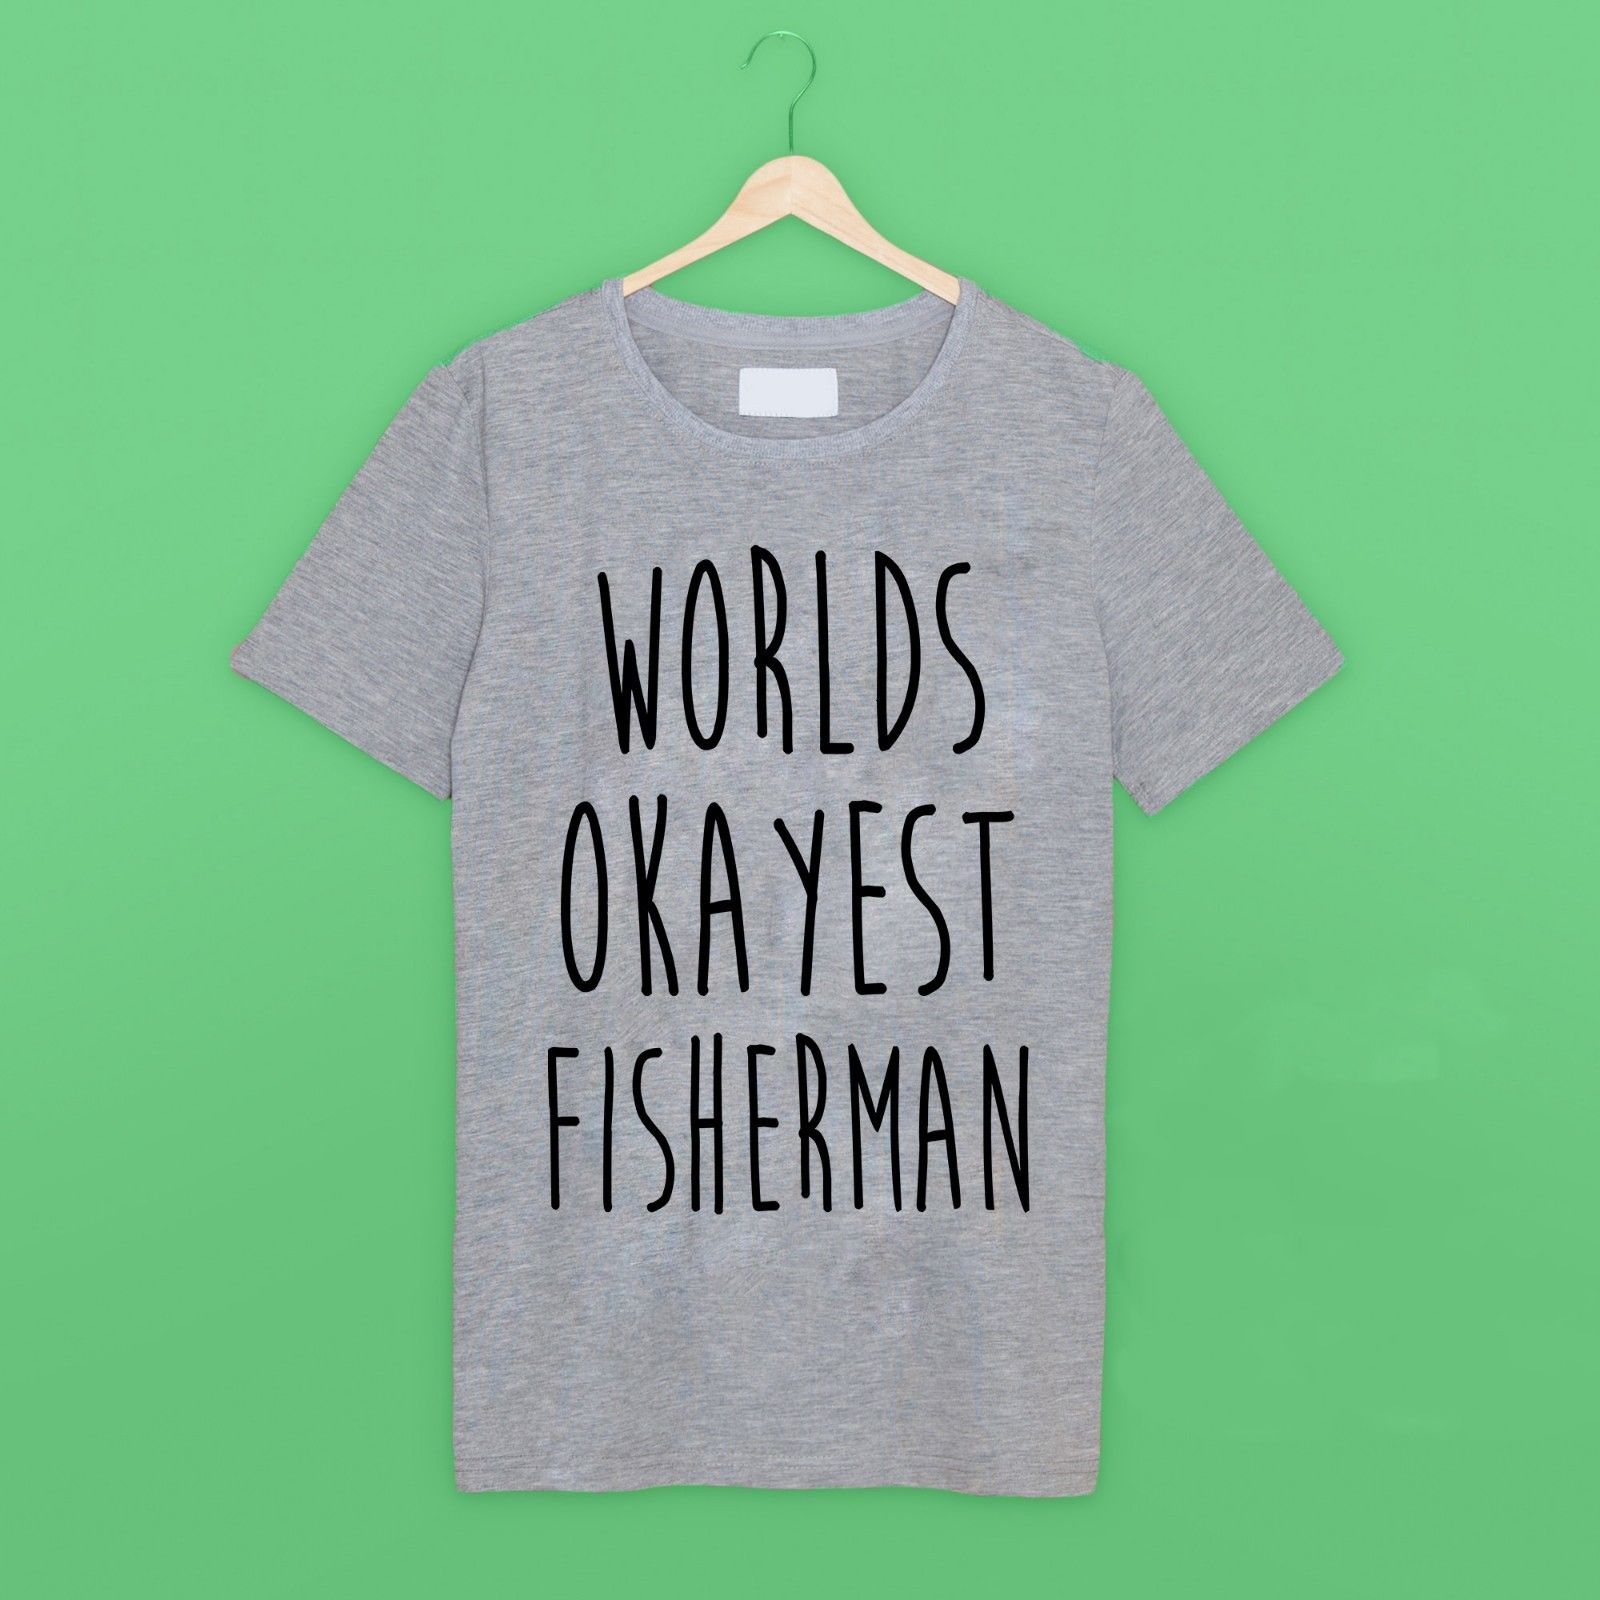 T shirt design job - Worlds Okayest Fisherman Funny Fishinger Job Work T Shirt In Grey Fashion Arrival Simple High Quality Personality Design T Shirt